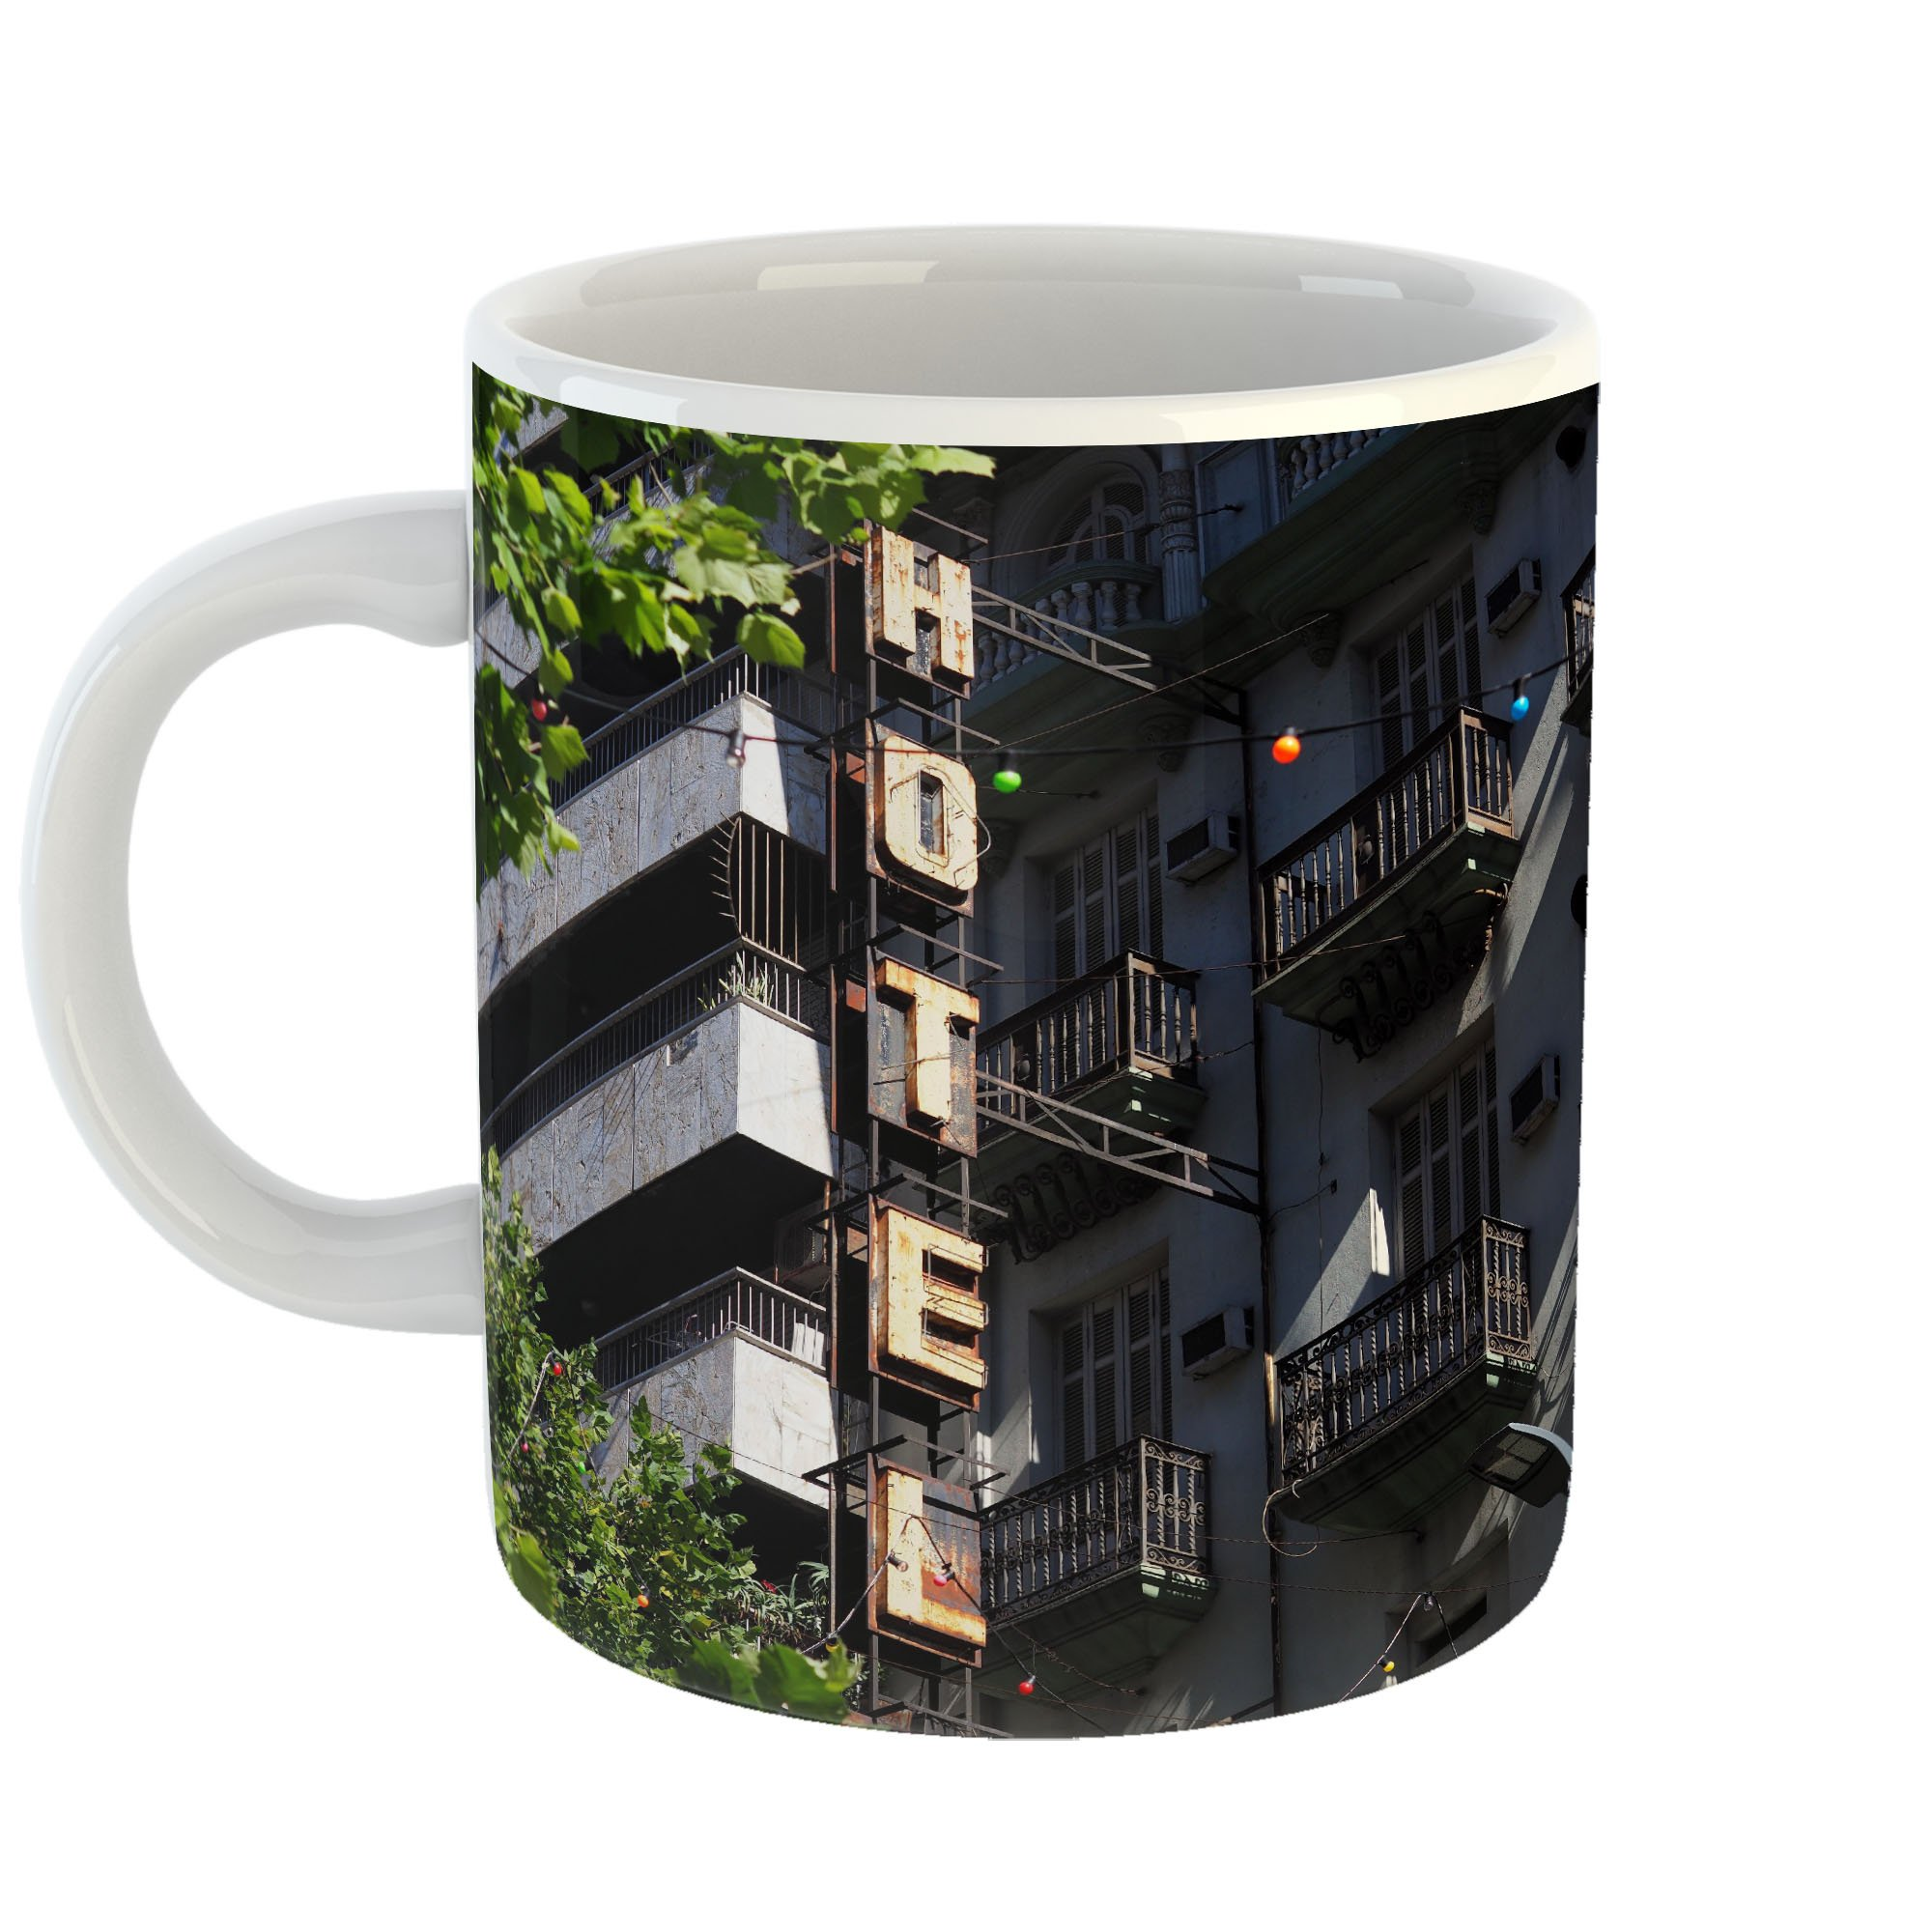 Westlake Art - City Hotel - 11oz Coffee Cup Mug - Modern Picture Photography Artwork Home Office Birthday Gift - 11 Ounce (8C6C-CC882)